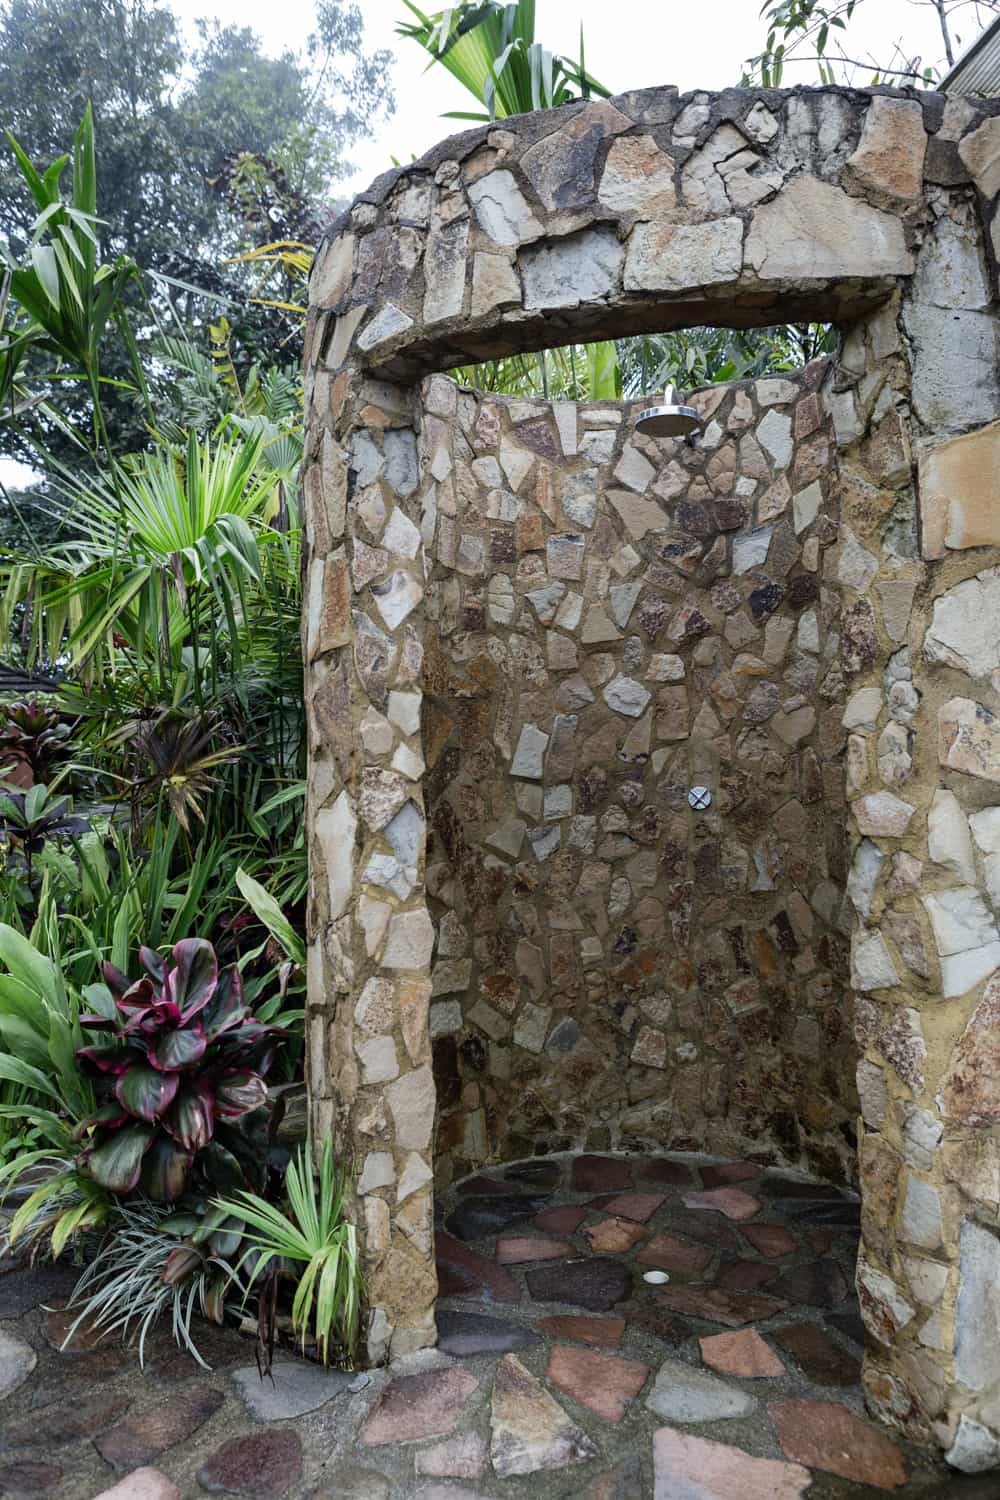 Stone shower by pool next to rainforest.